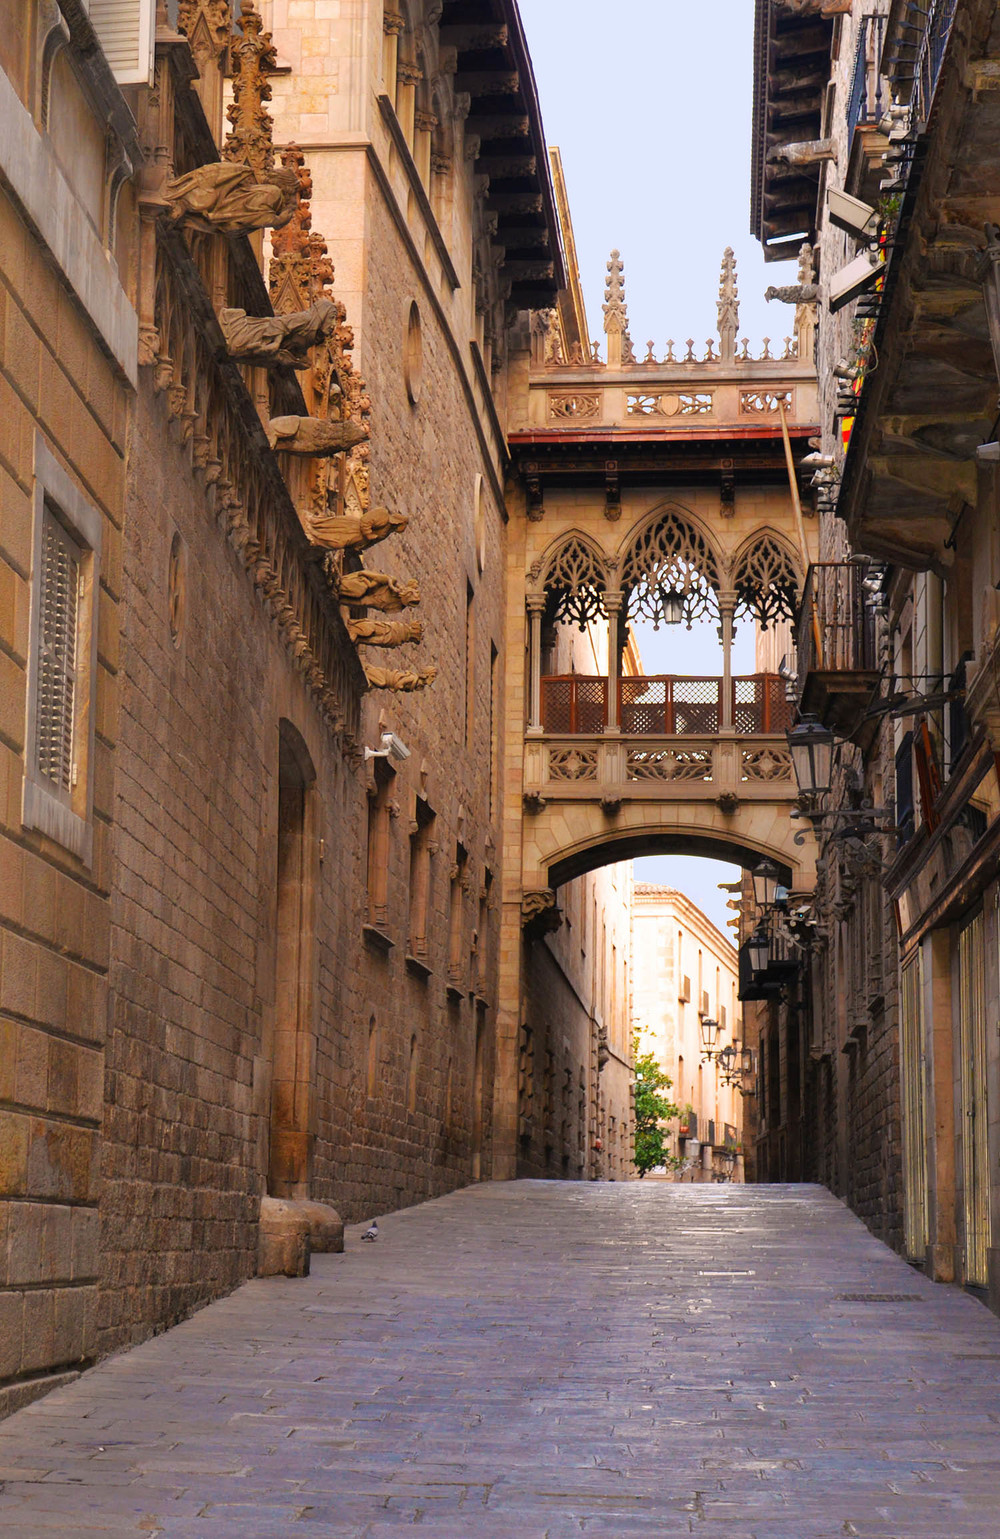 Bridge over Carrer del Bisbe, Joan Rubió  , linking the   Palau de la Generalitat   (Catalan Government Seat) with the   Casa dels Canonges   (residence of the President).